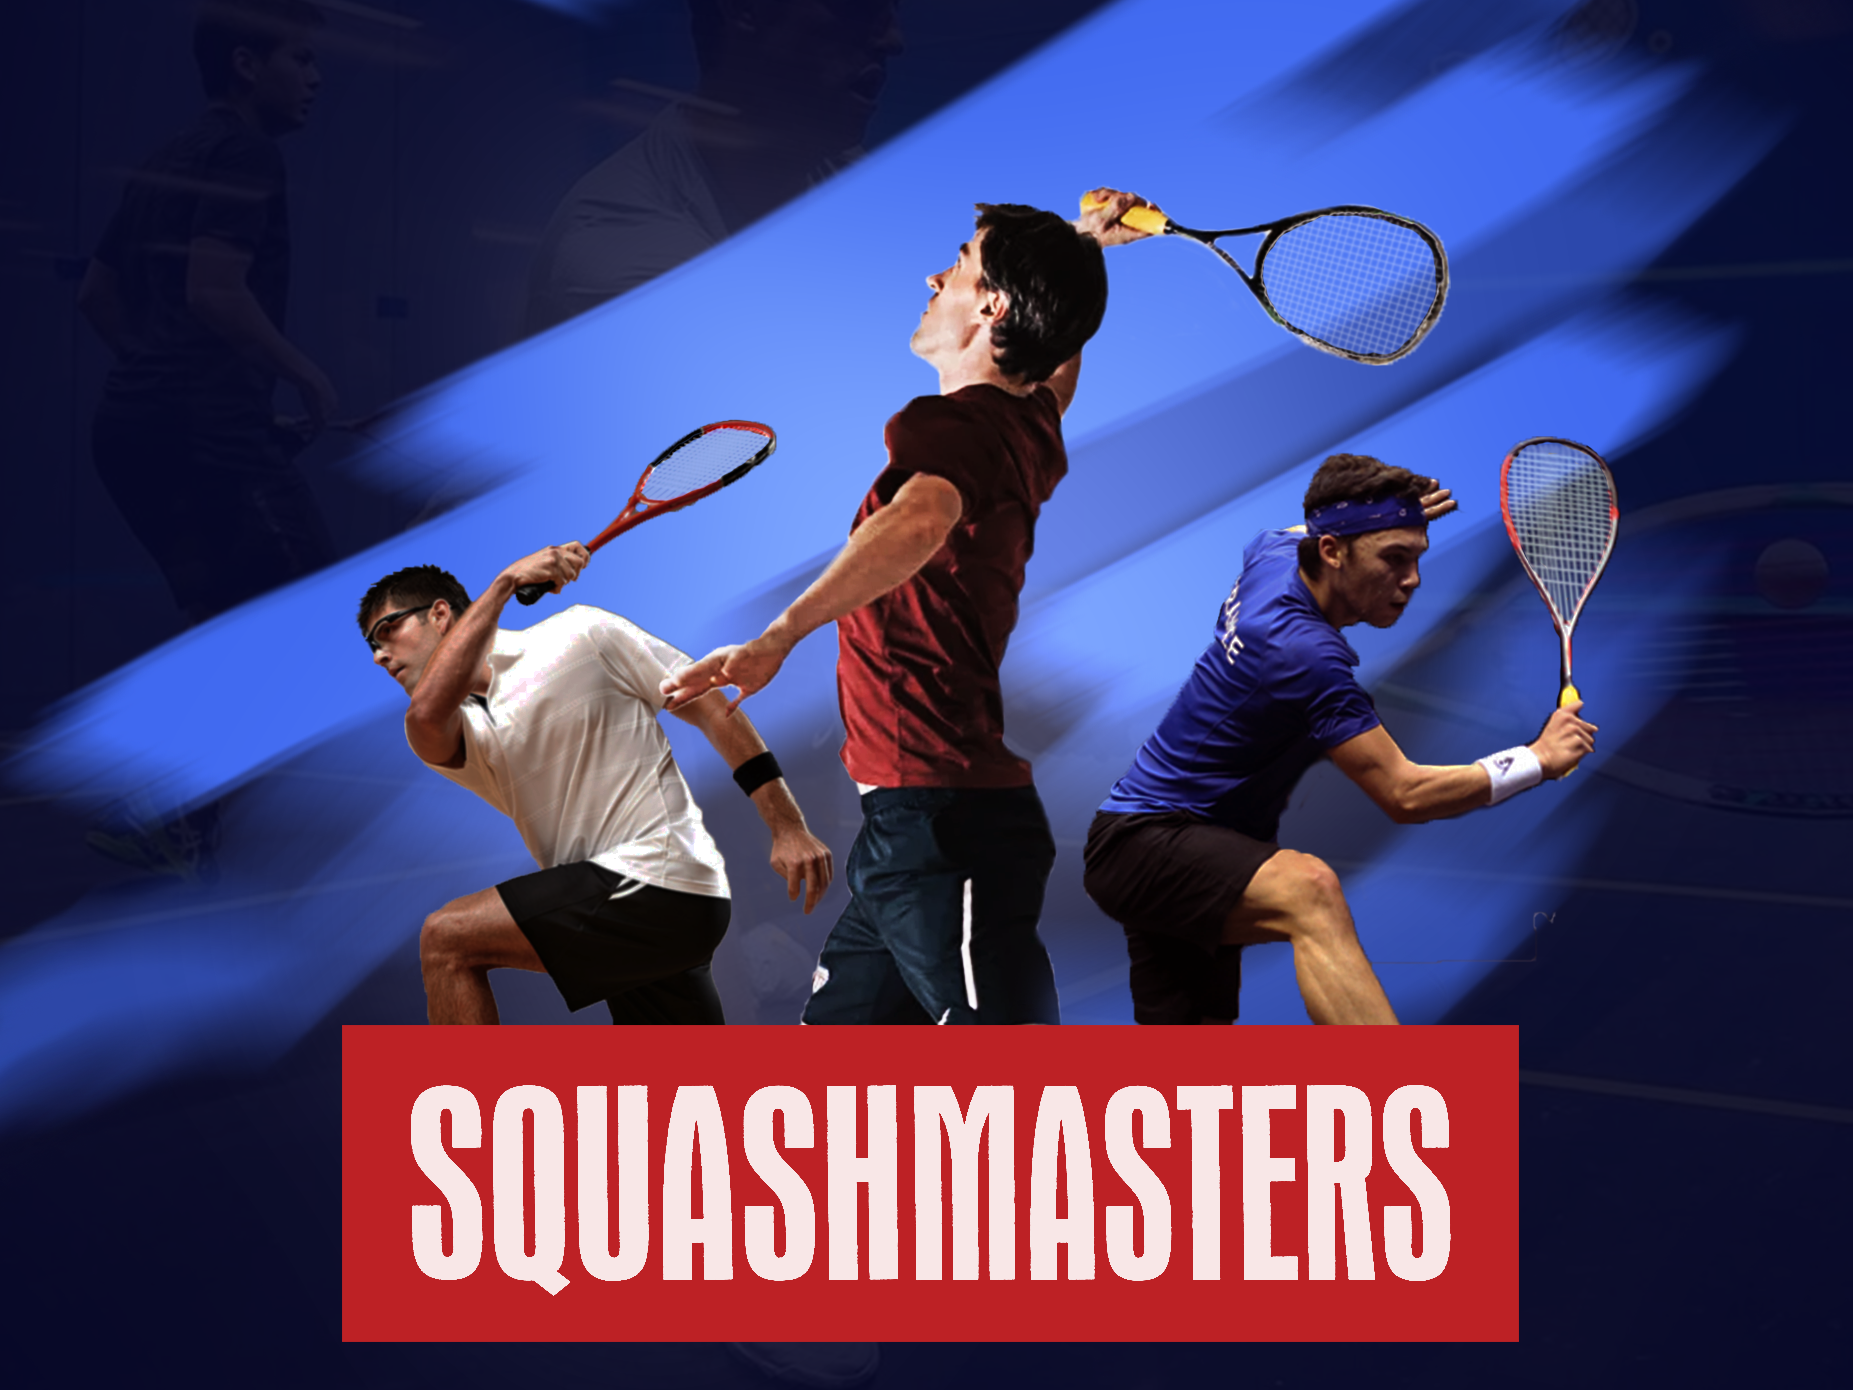 http://squashcity.pl/wp-content/uploads/2020/10/squashmasters-cover-thumb.png